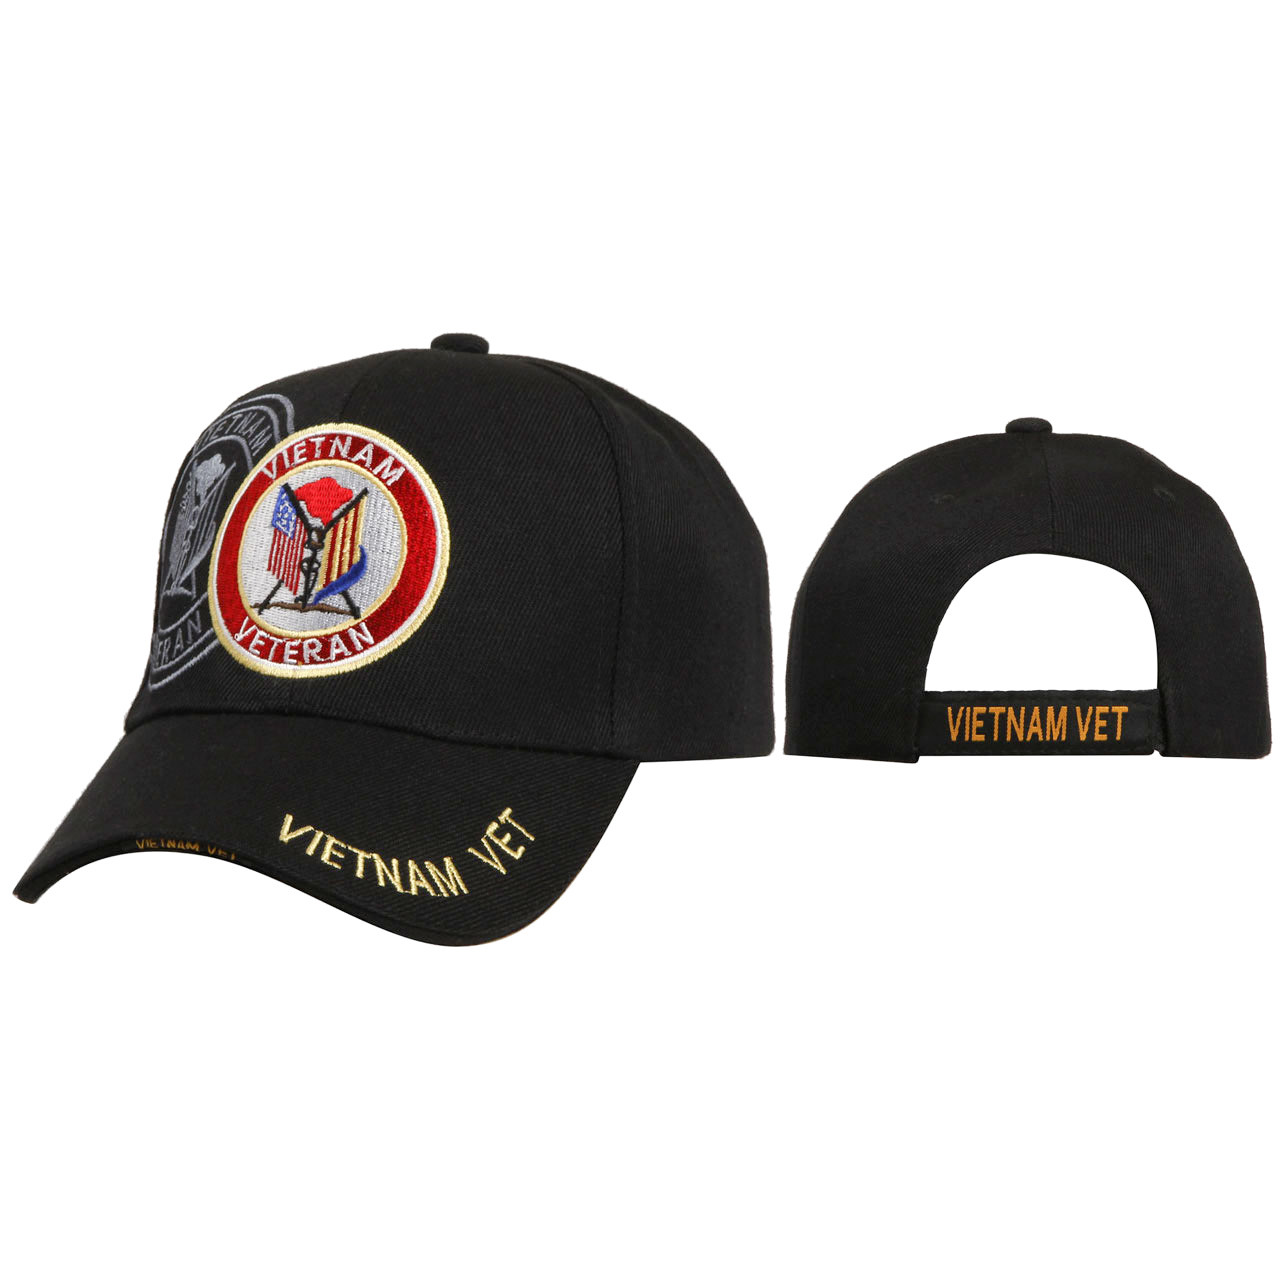 Veteran Caps Wholesale C157 ~ Vietnam Veteran ~ Black